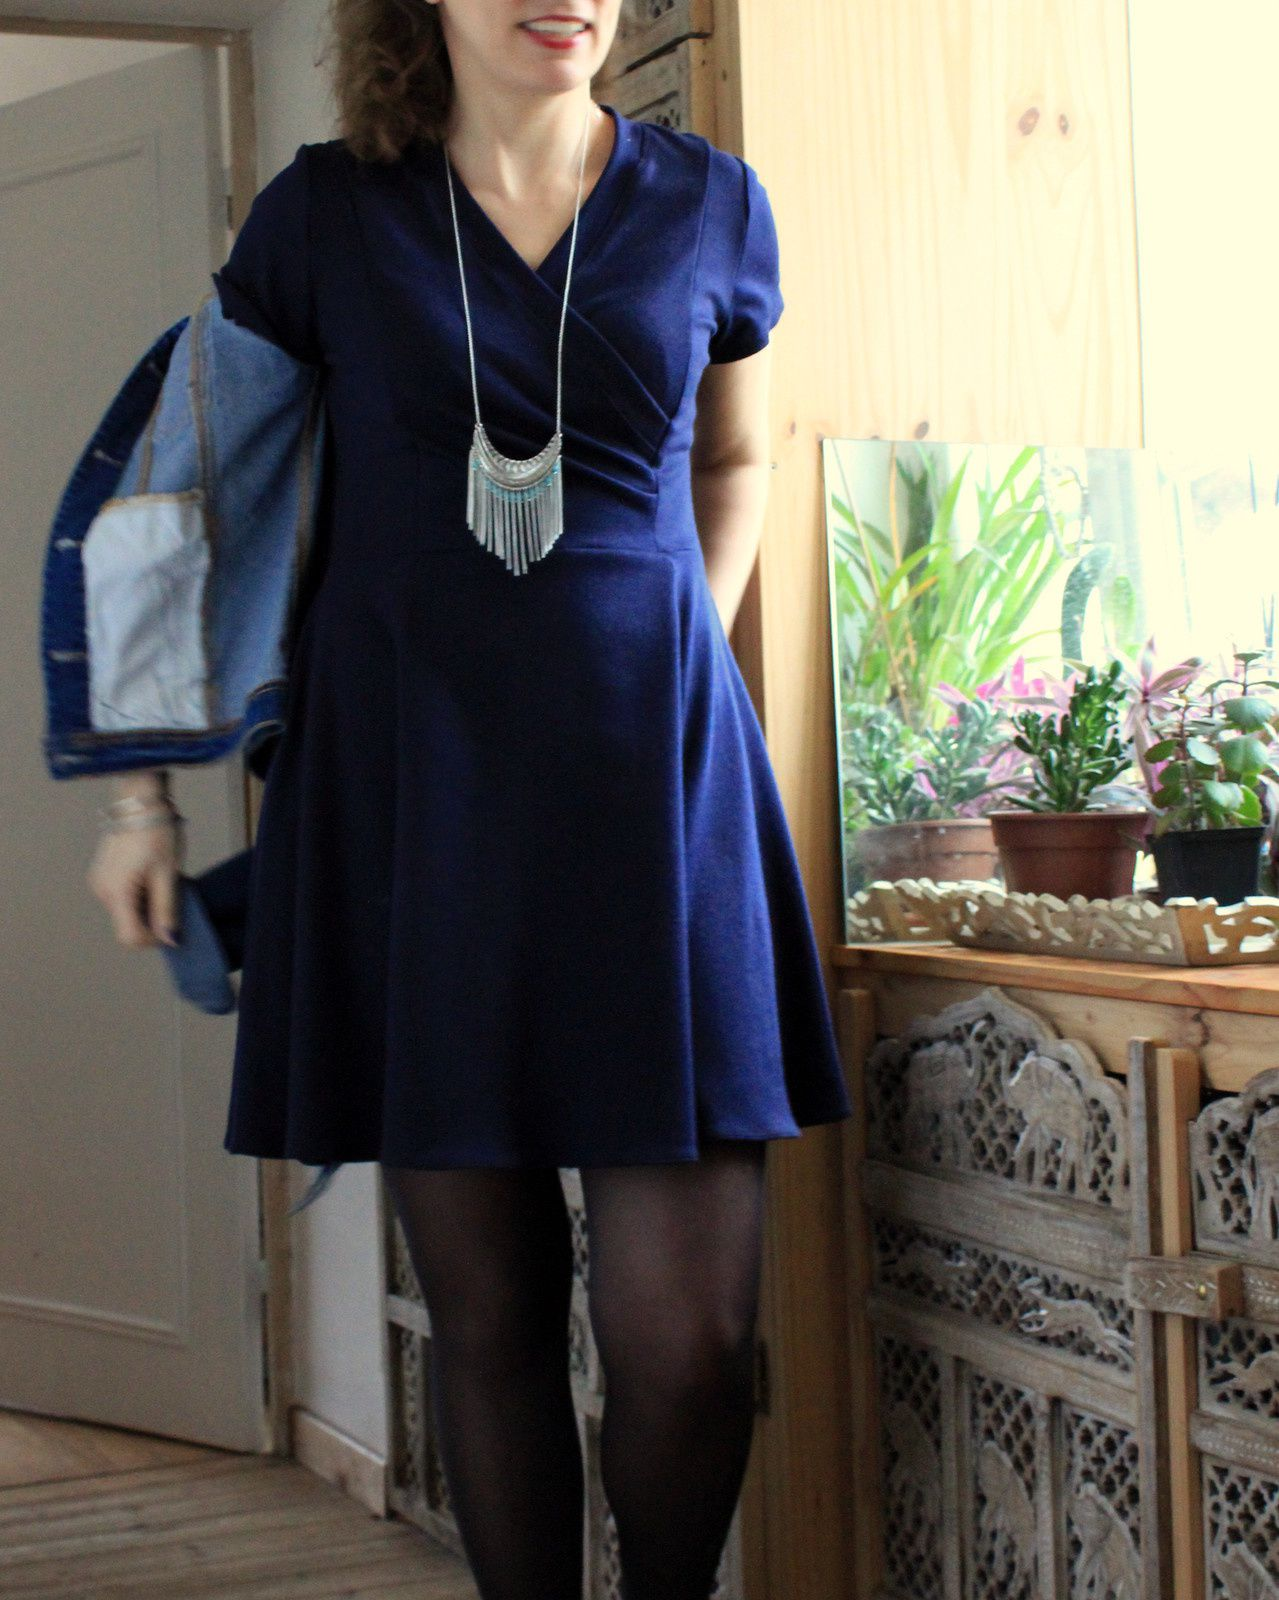 Aldaia dress, projet capsule #1